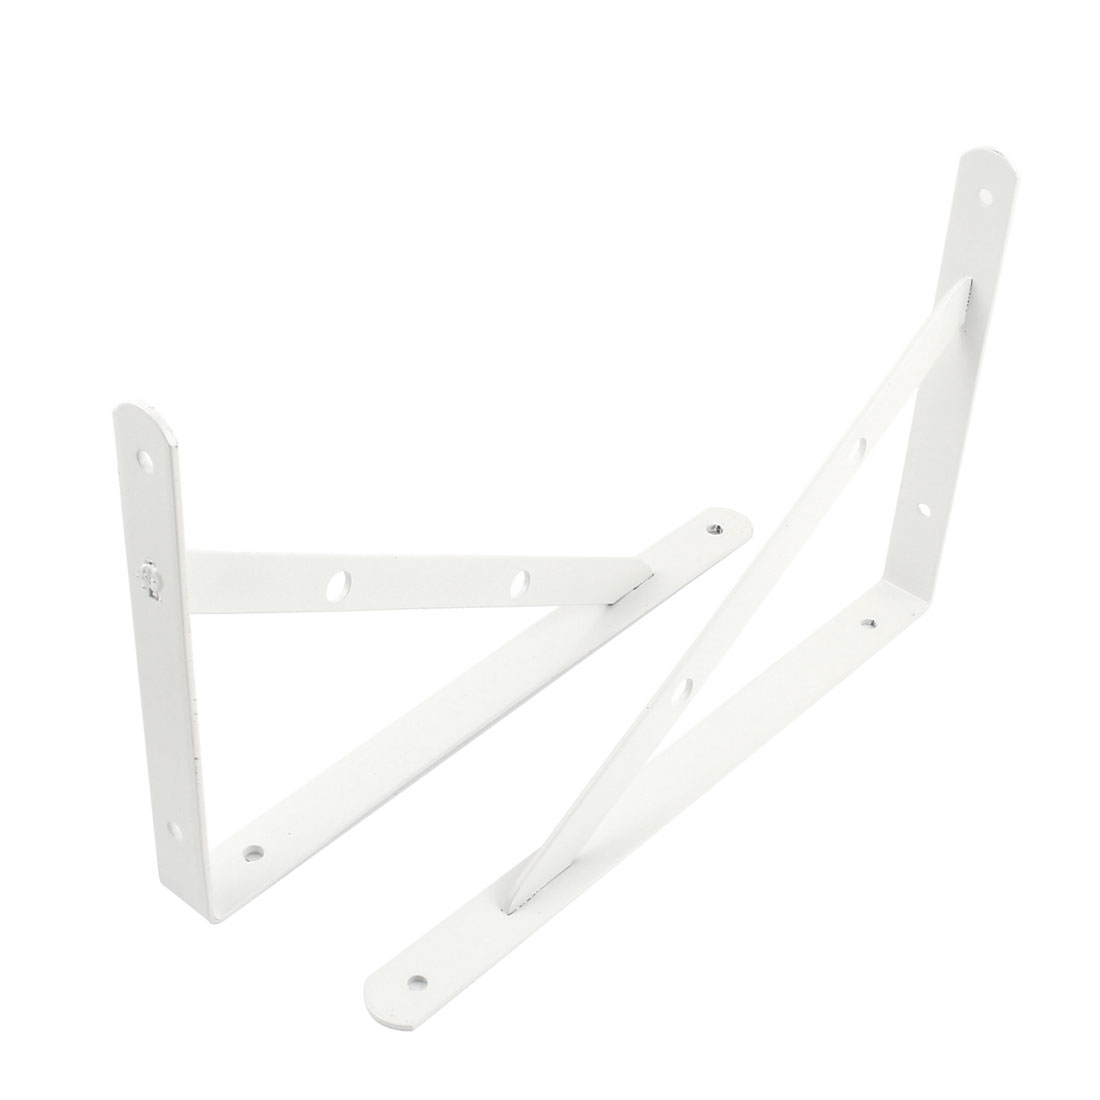 "12"" x 7.5"" White L Shaped Book Goods Holder Shelf Bracket Support 2 Pcs"